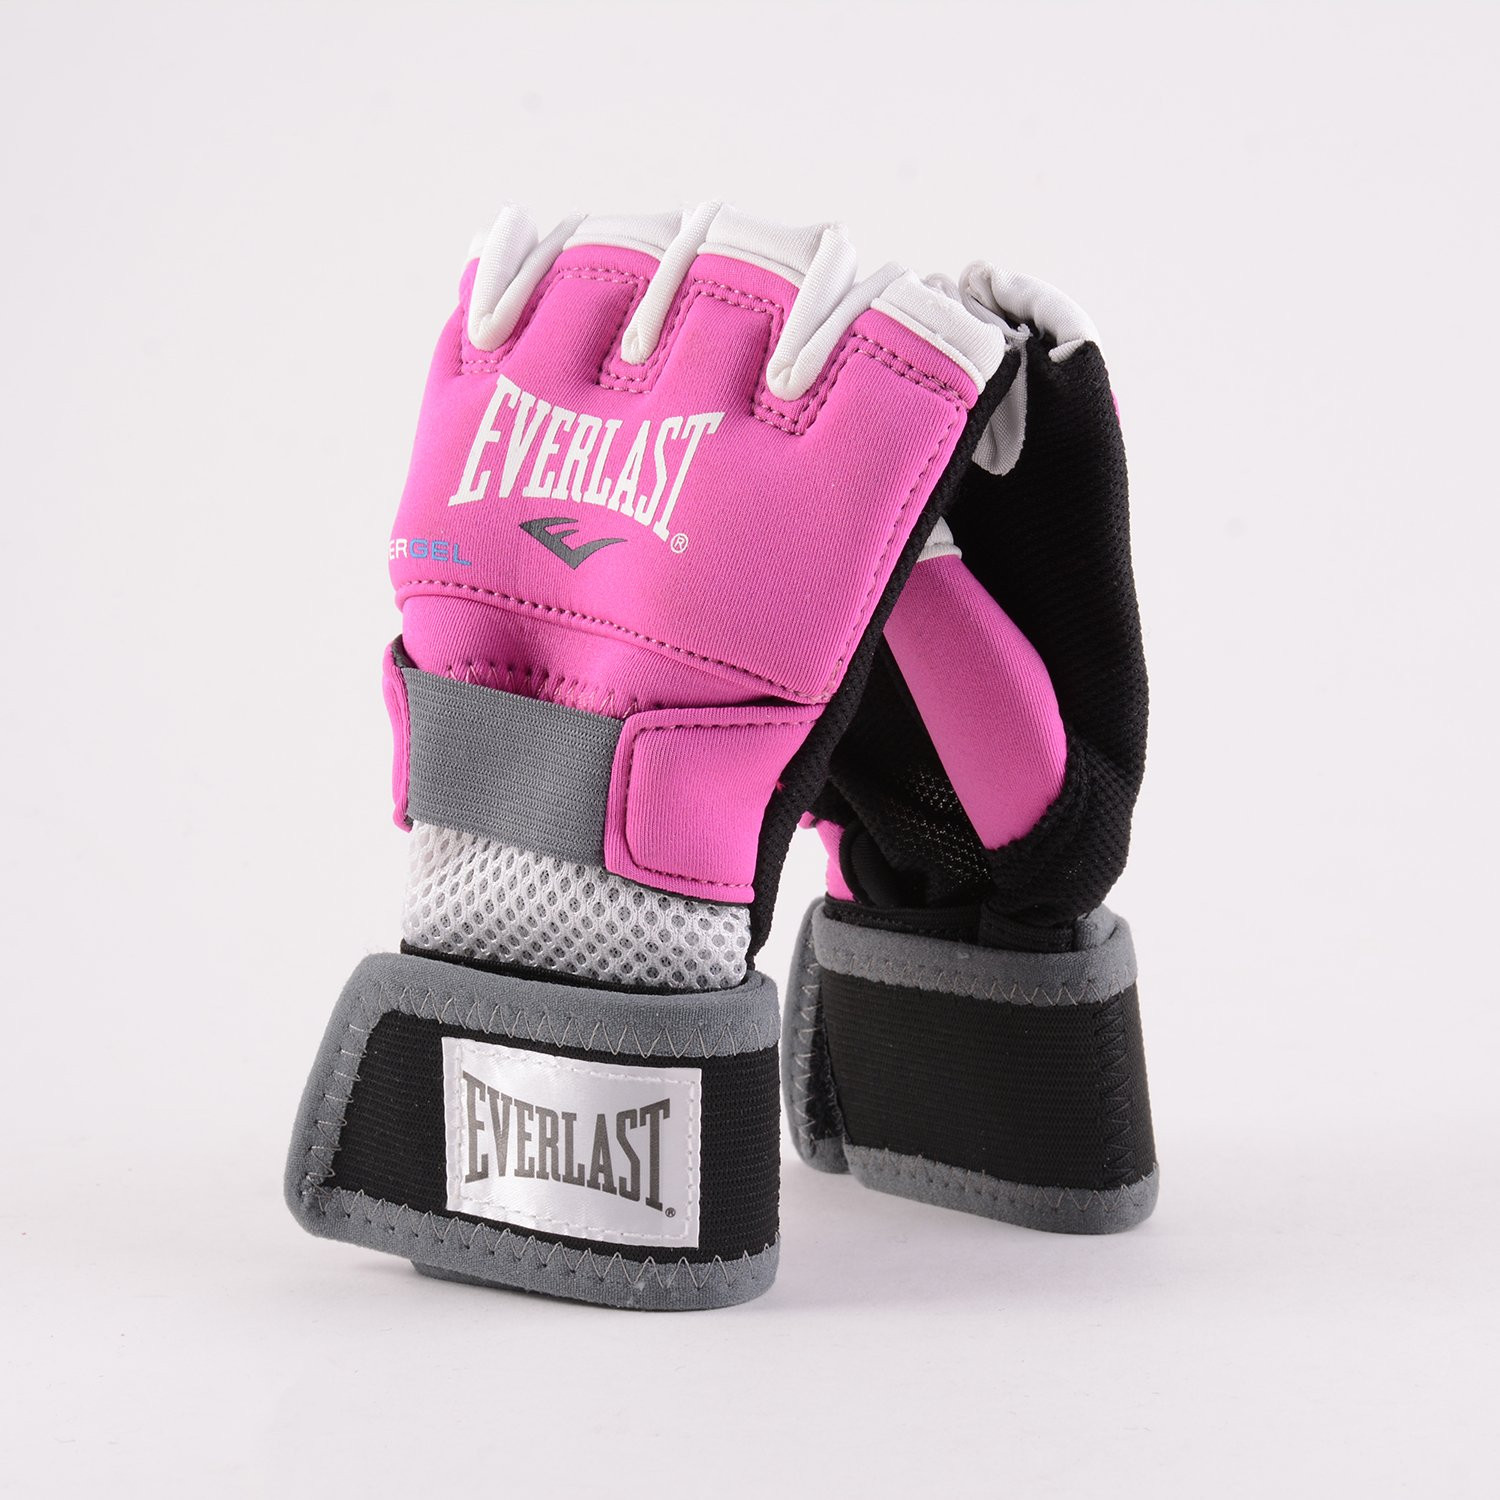 Everlast Ever-Gel Glove Wraps (9000040644_3142)